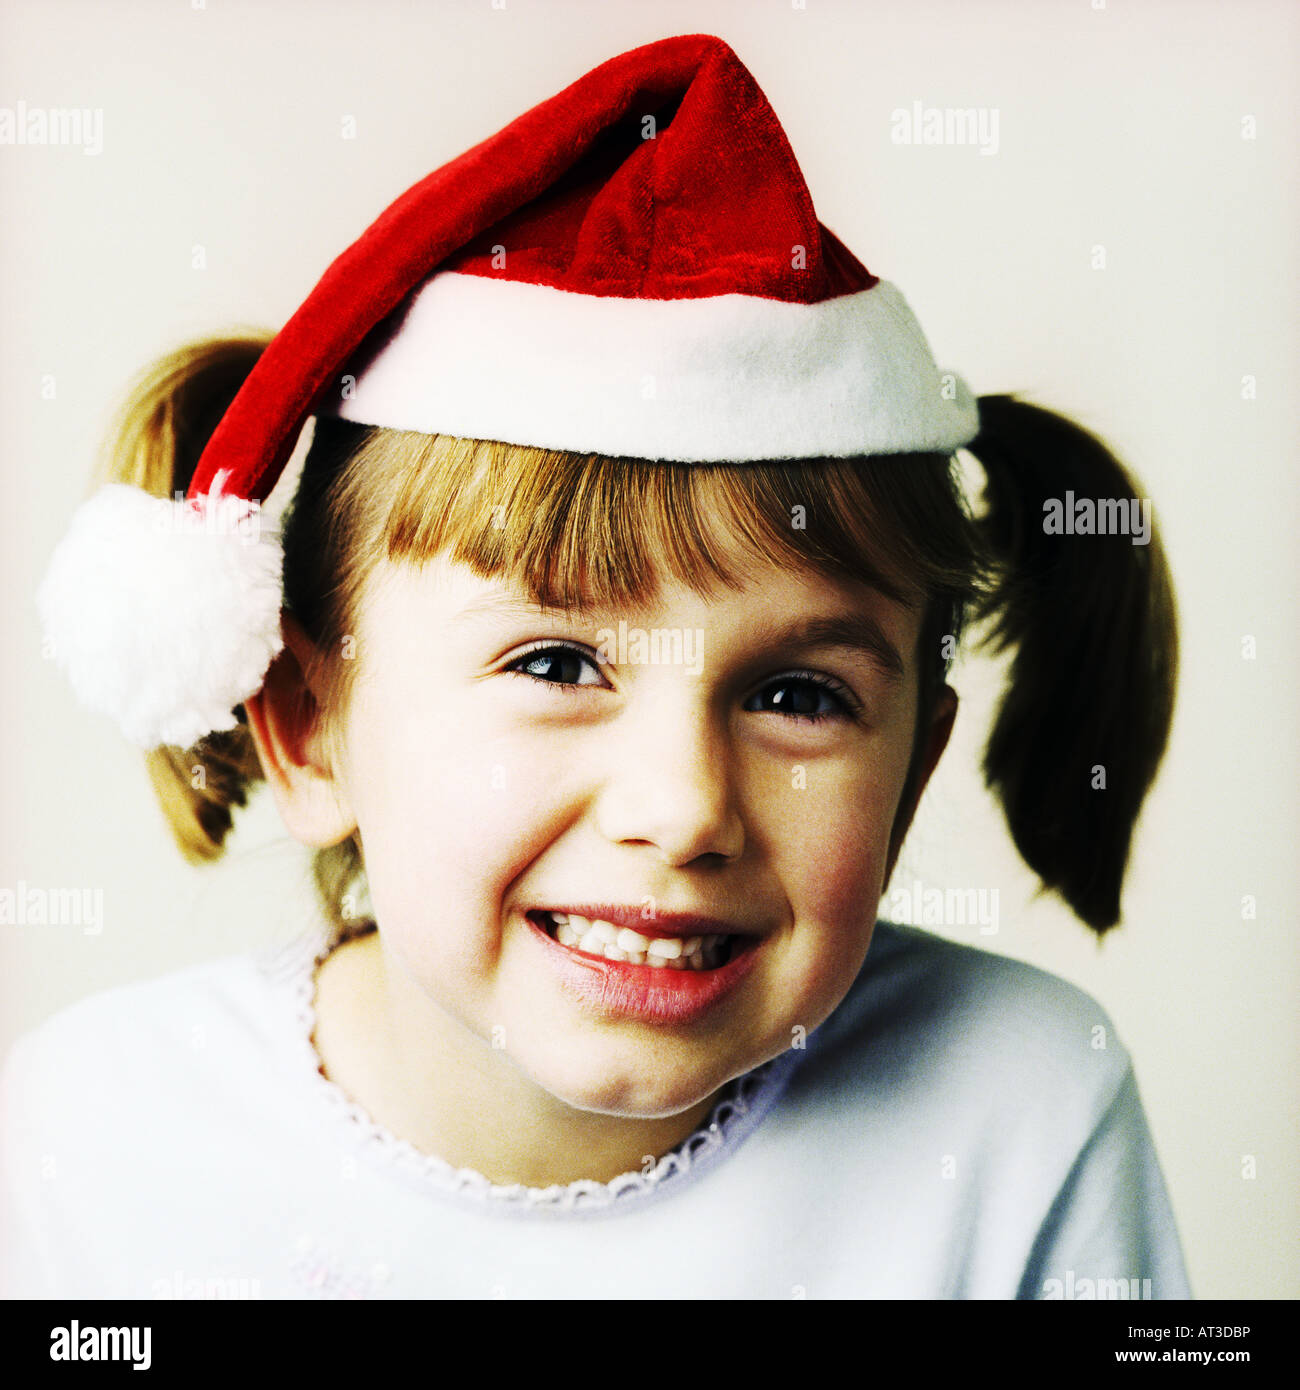 A girl wearing a Santa hat - Stock Image